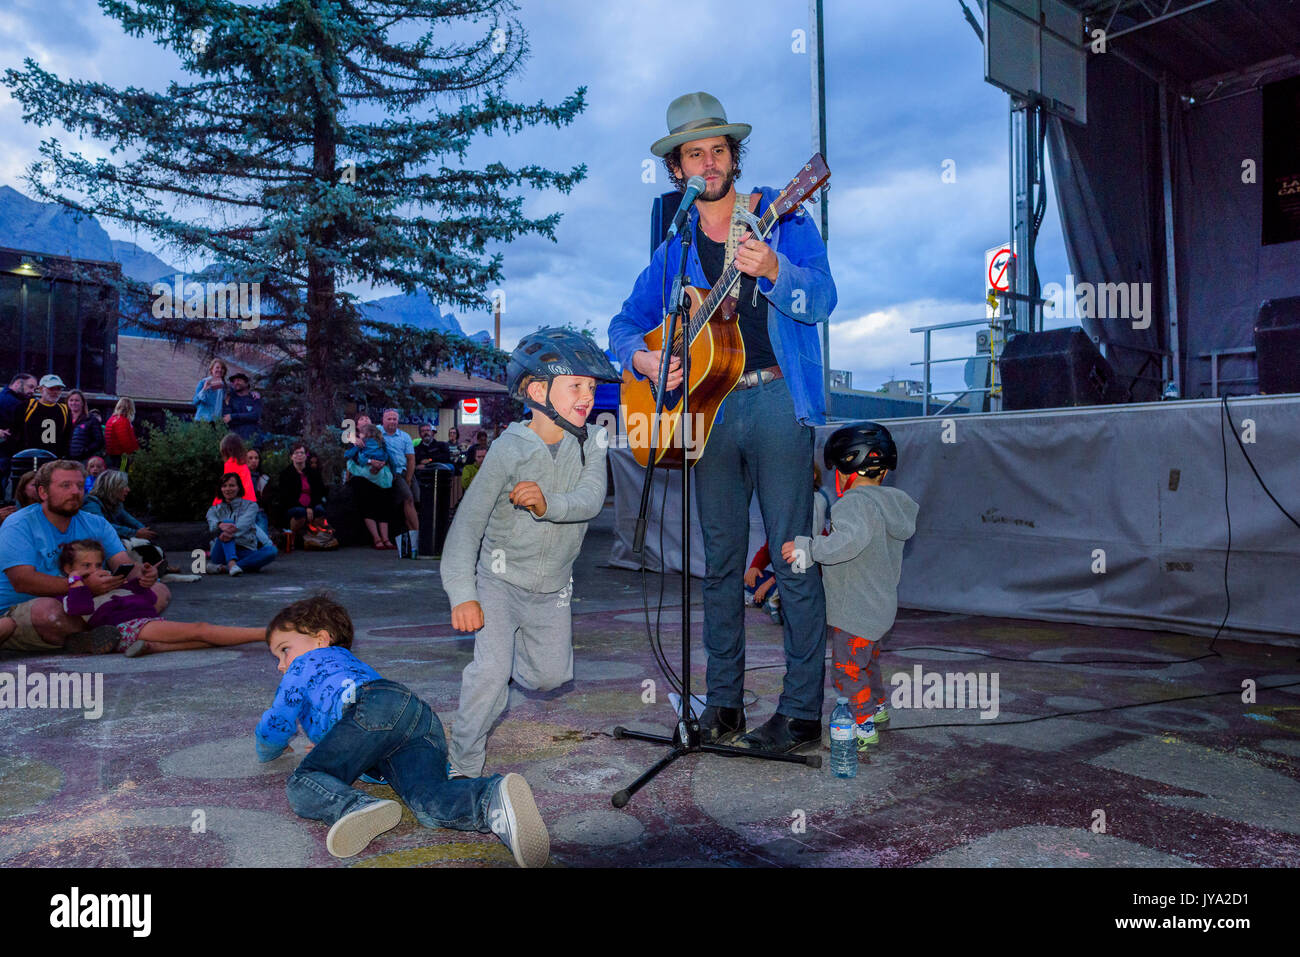 Langhorne Slim performs while kids play around him at Canmore Folk Music Festival, Canmore, Alberta, Canada Stock Photo